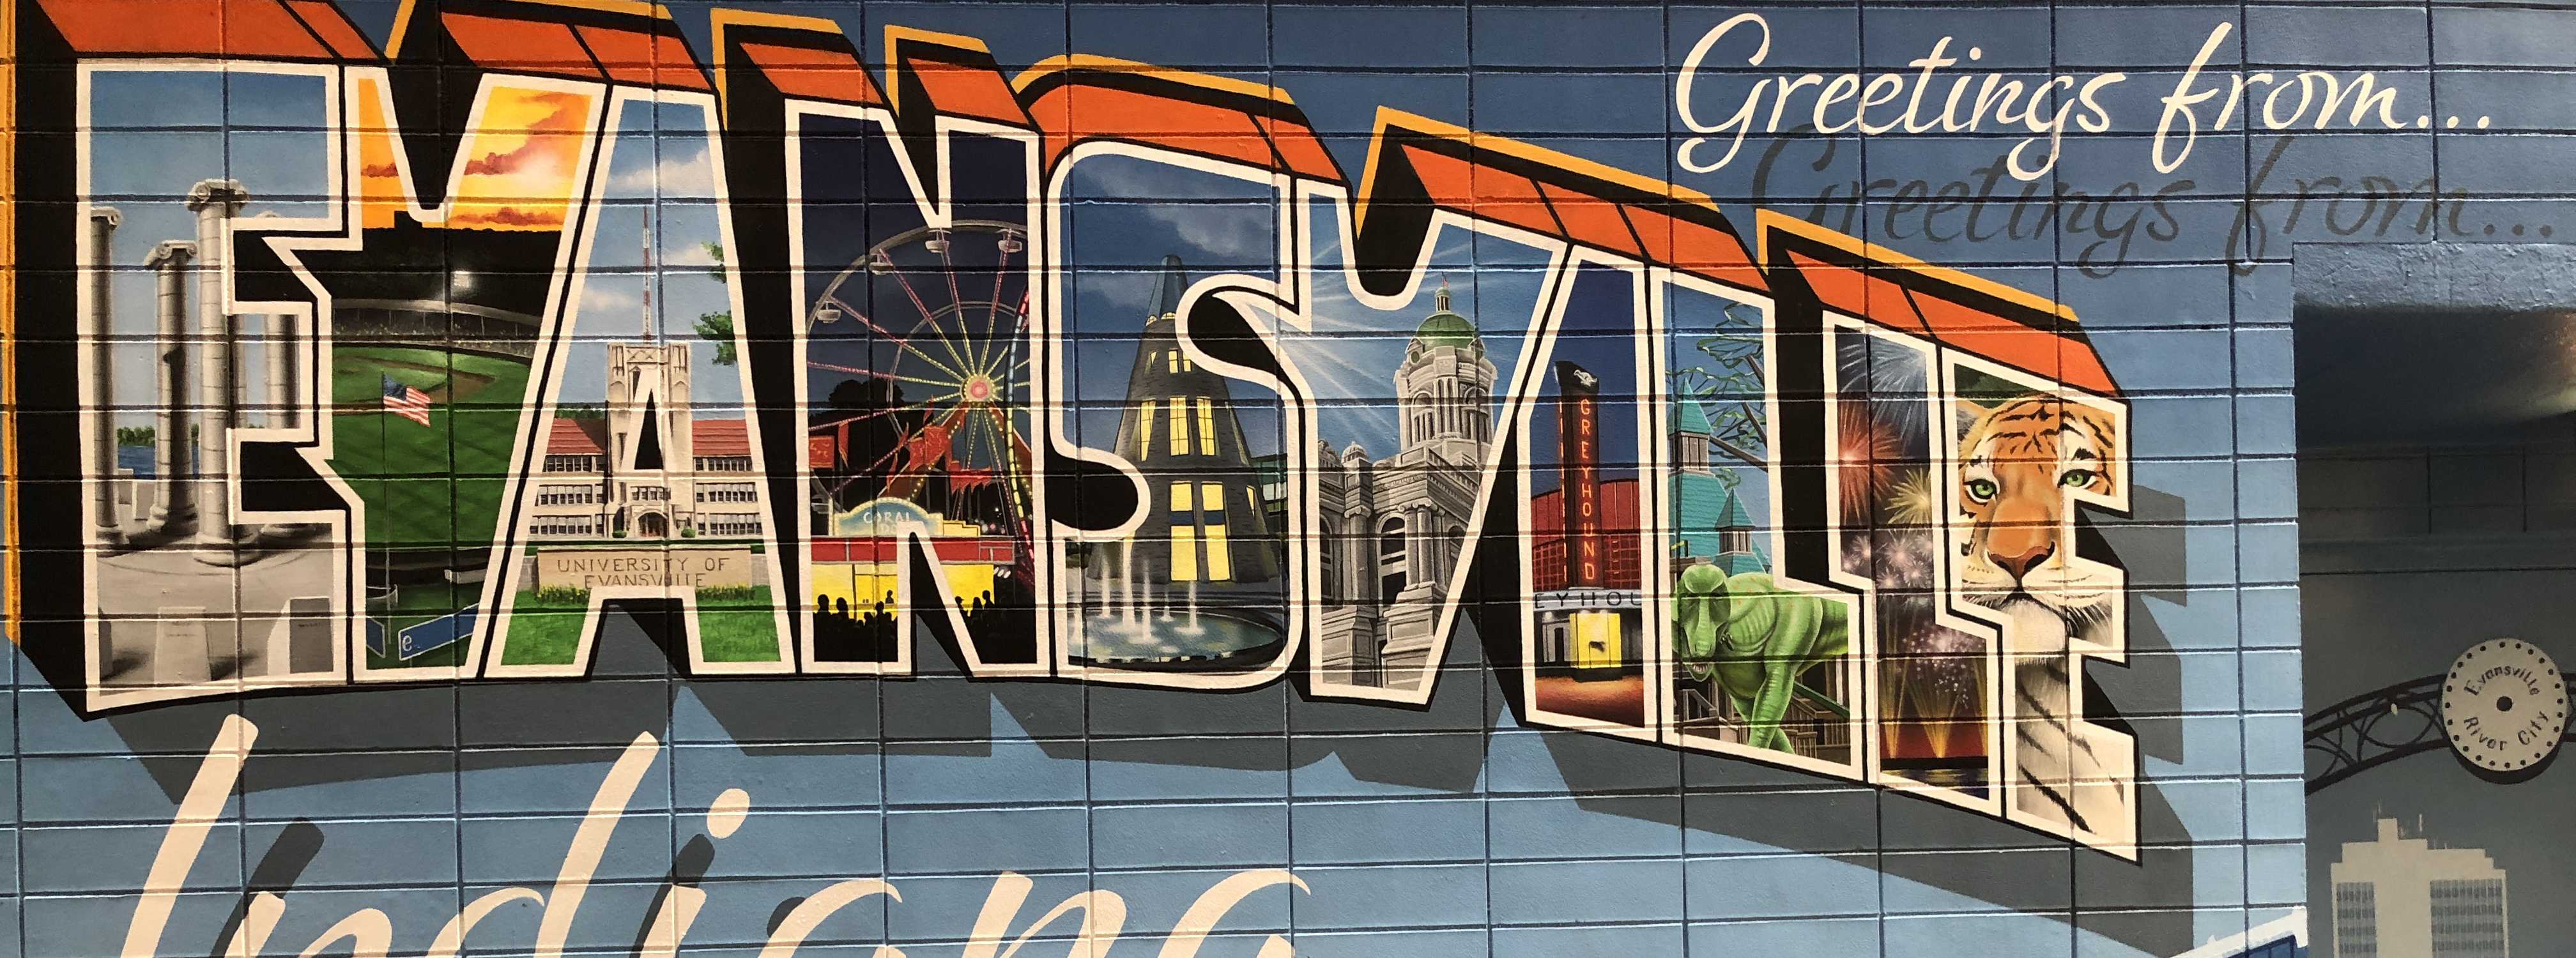 Greetings from Evansville Mural